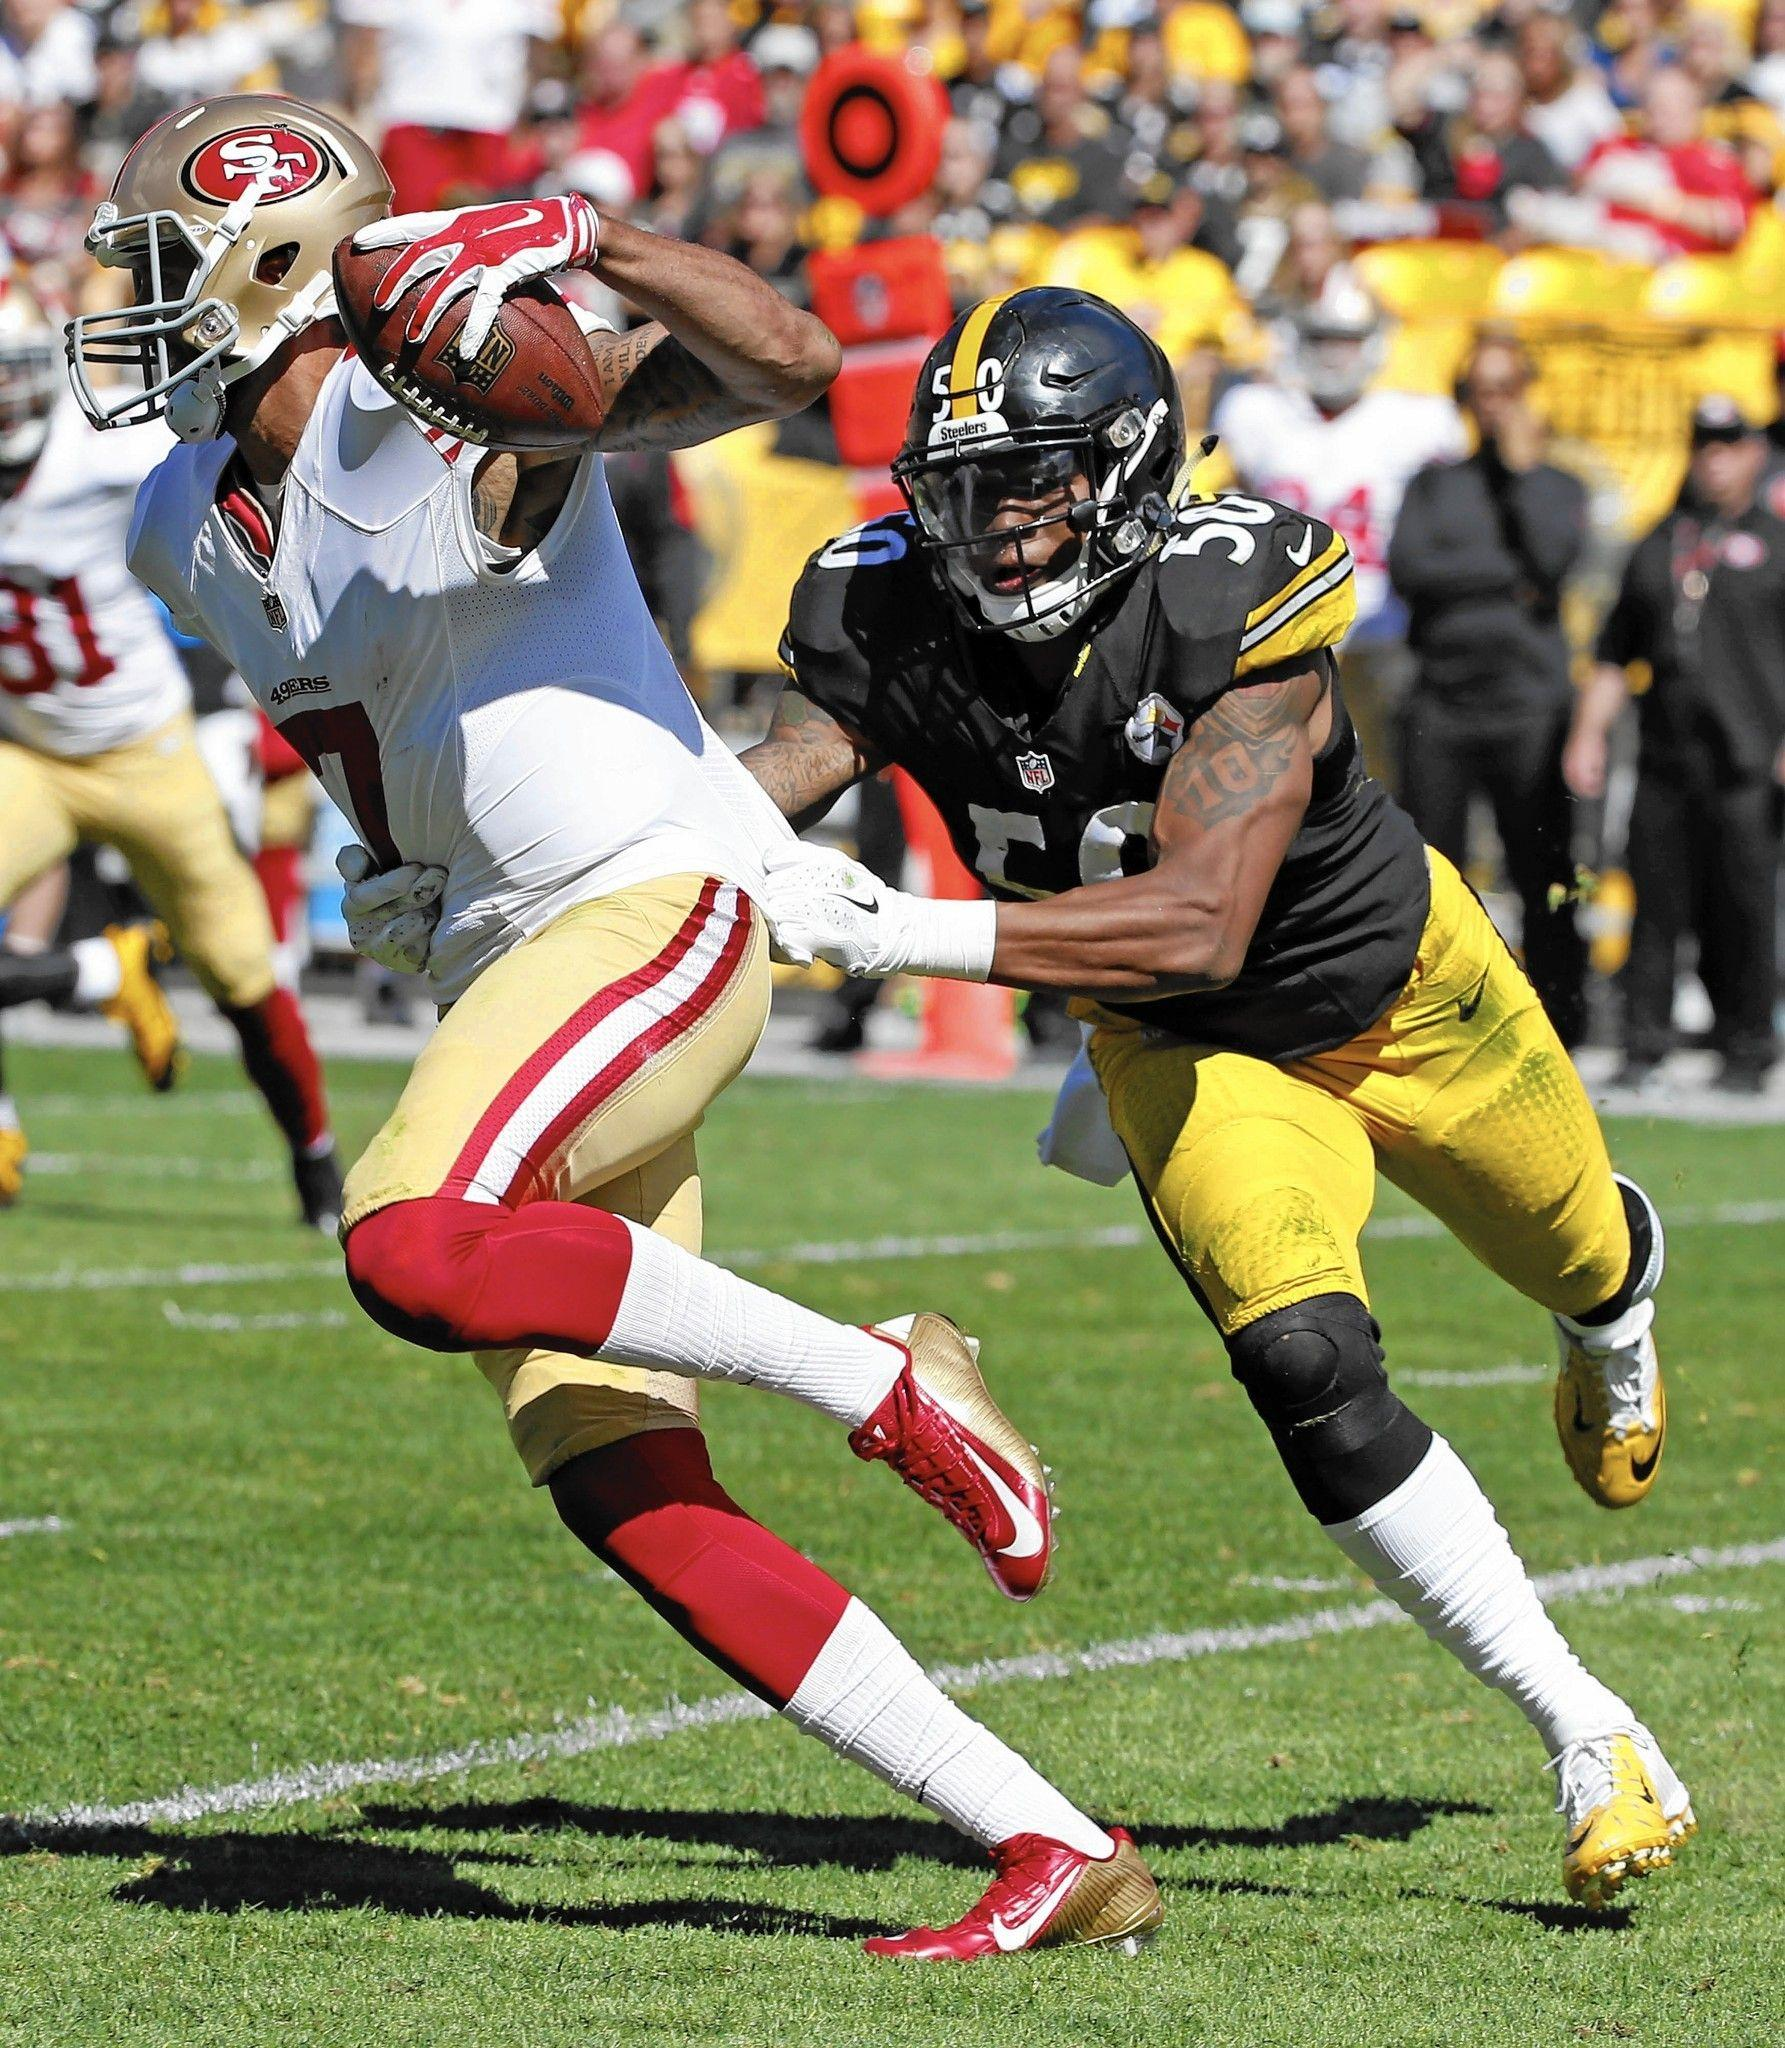 Steelers linebacker Ryan Shazier starting to shine - The Morning Call